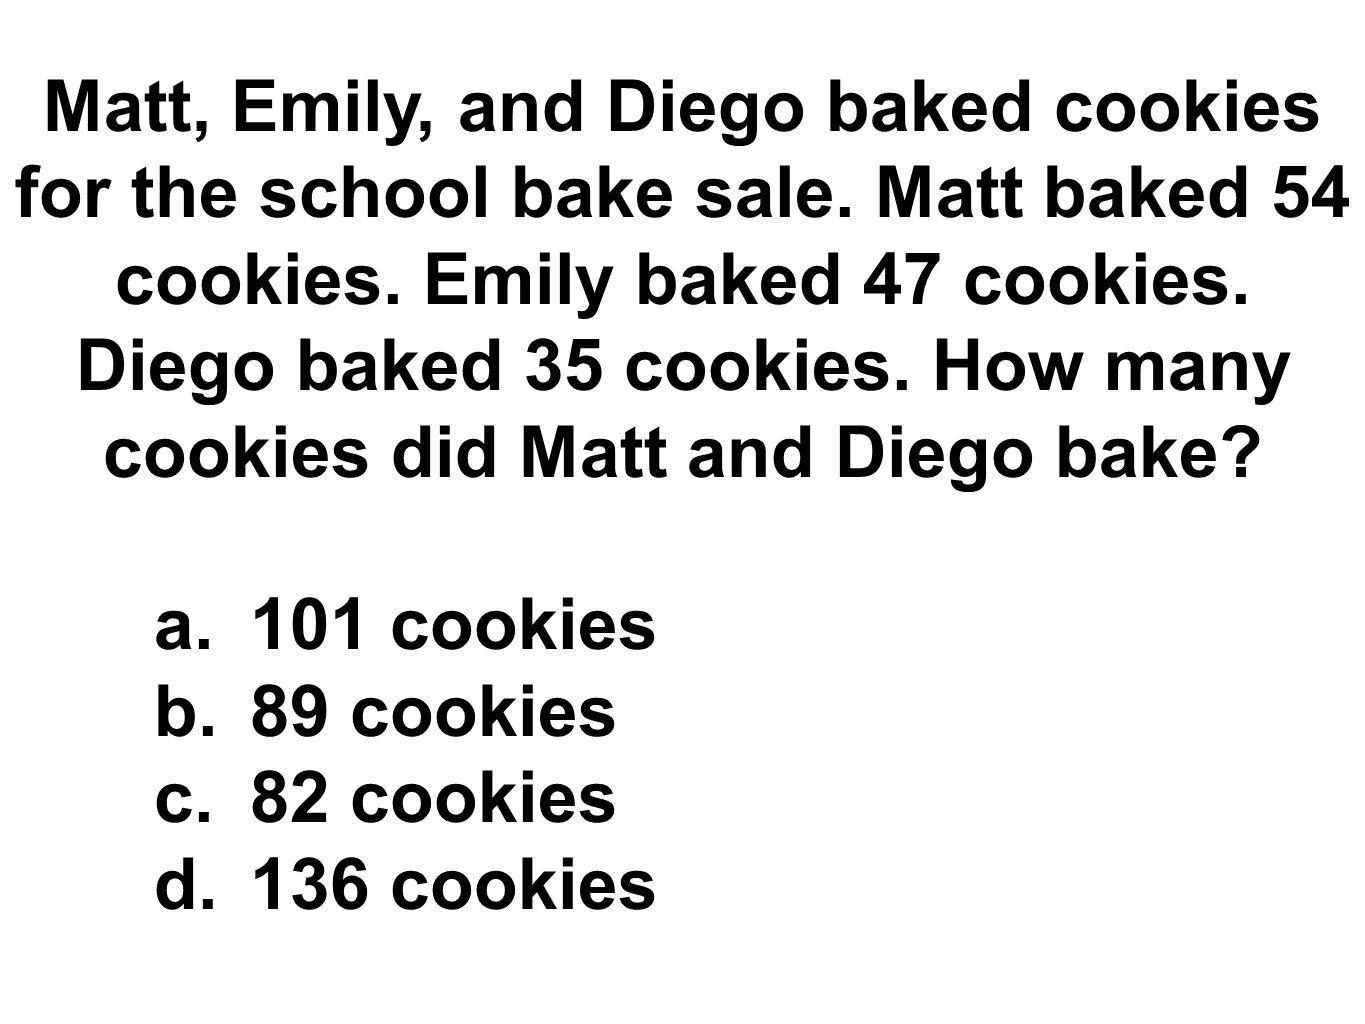 Matt, Emily, and Diego baked cookies for the school bake sale. Matt baked 54 cookies. Emily baked 47 cookies. Diego baked 35 cookies. How many cookies